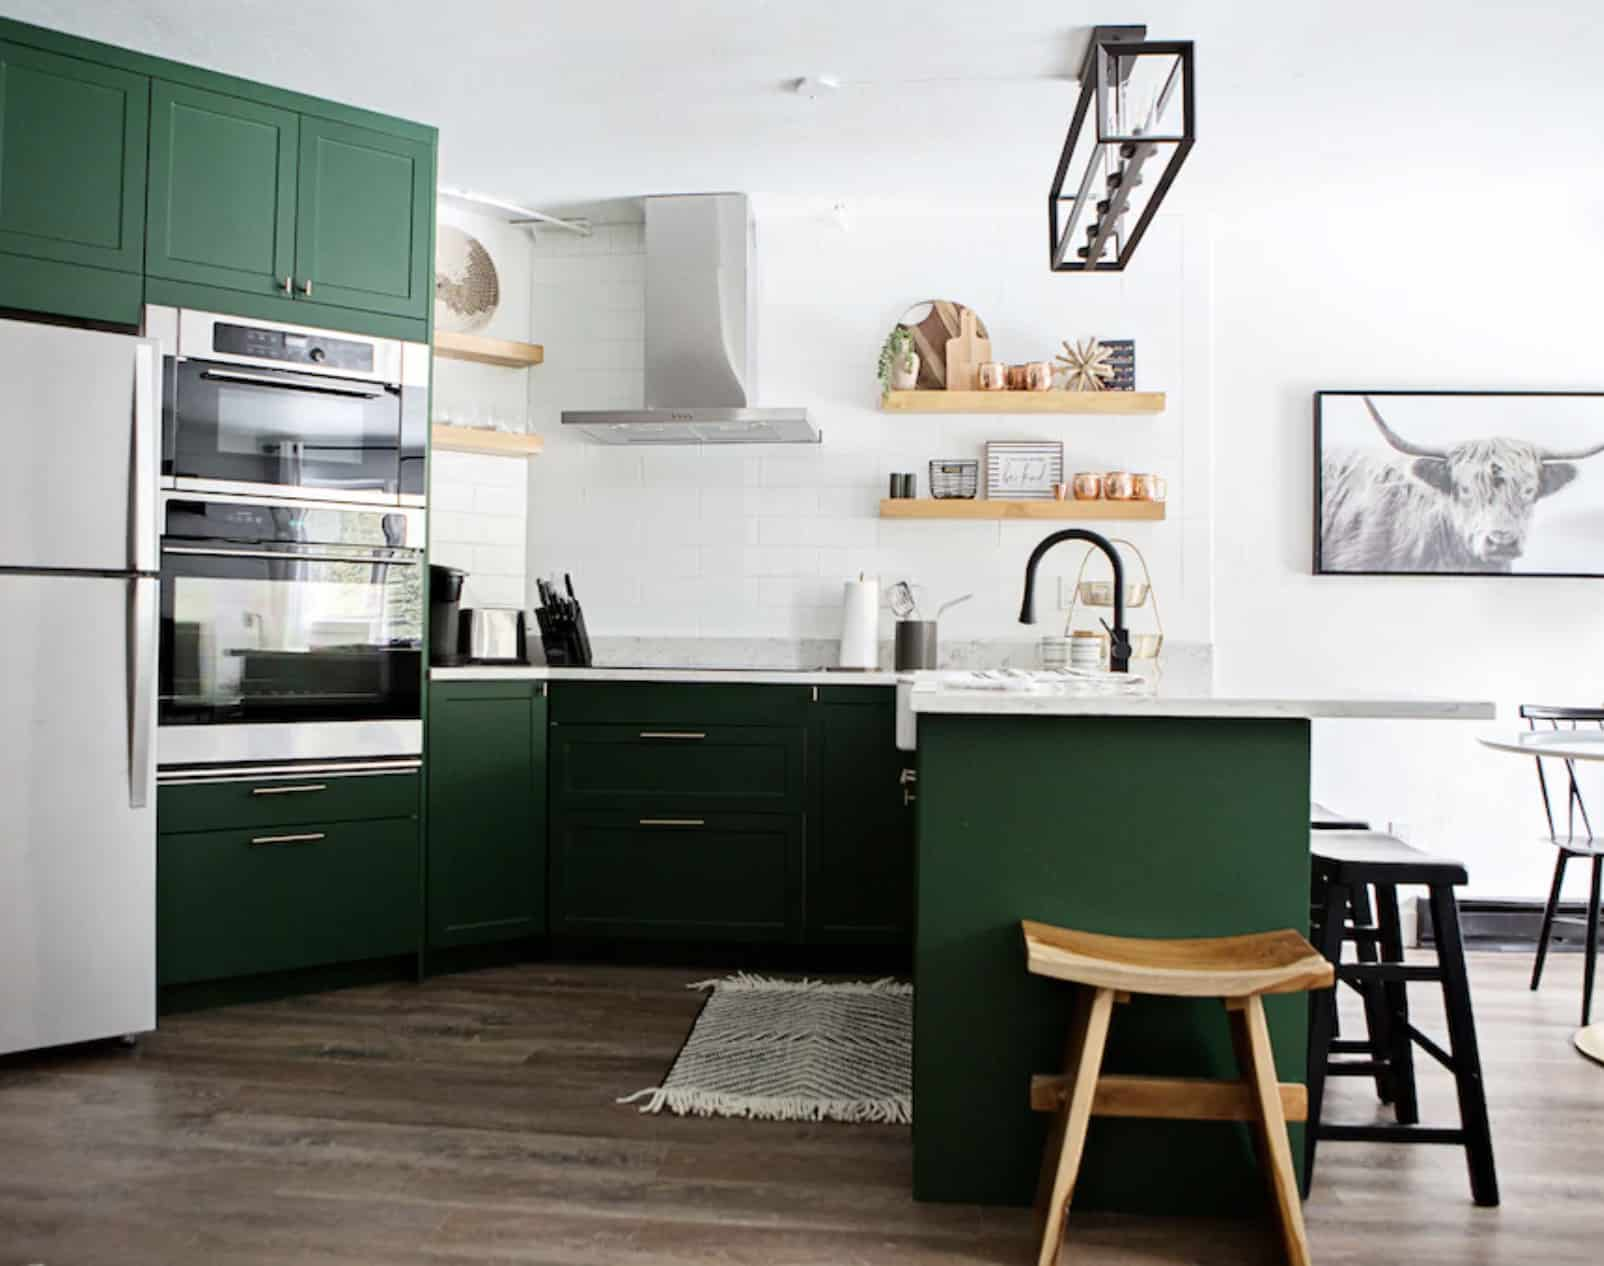 airbnb wedding venues colorado modern ski in and out condo with goregous green kitchen